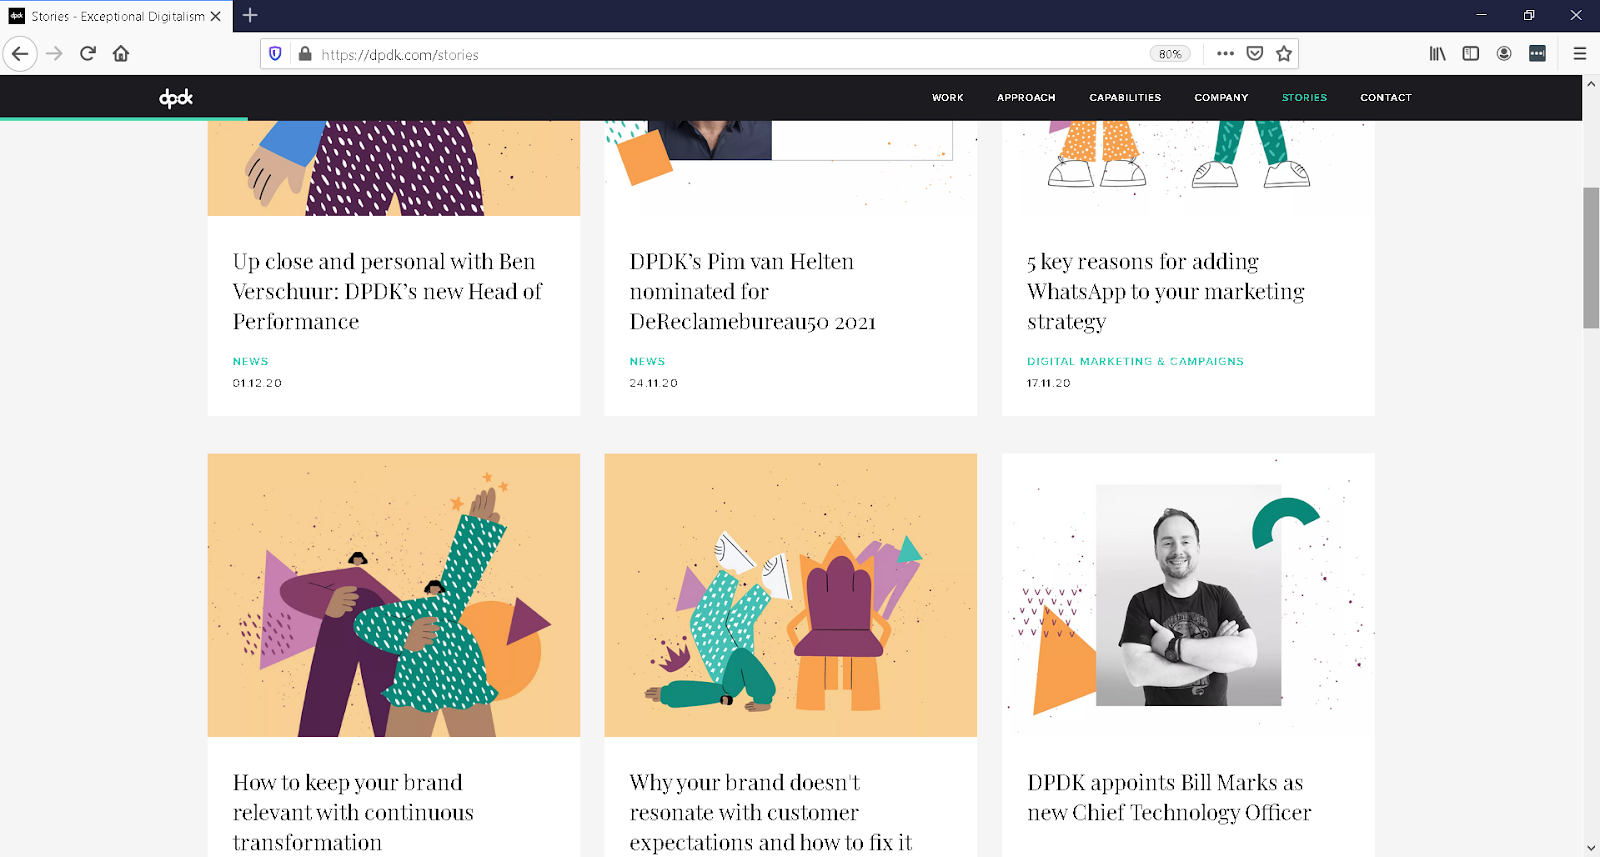 The DPDK website is shown with various pieces of content, such as articles, all of which had images from its inclusive design system.